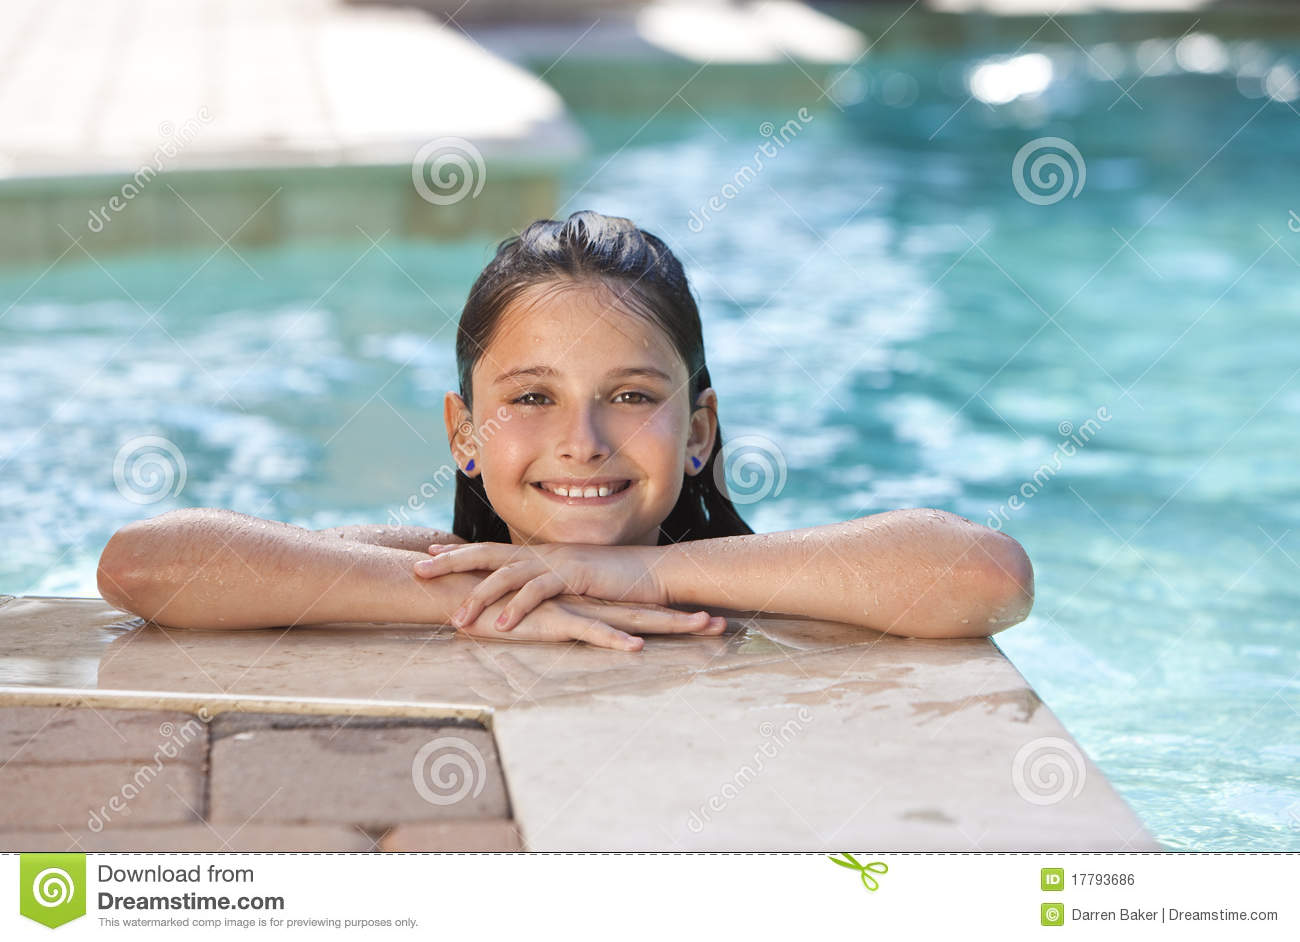 young girl child relaxing and smiling on the side of a swimming pool ...